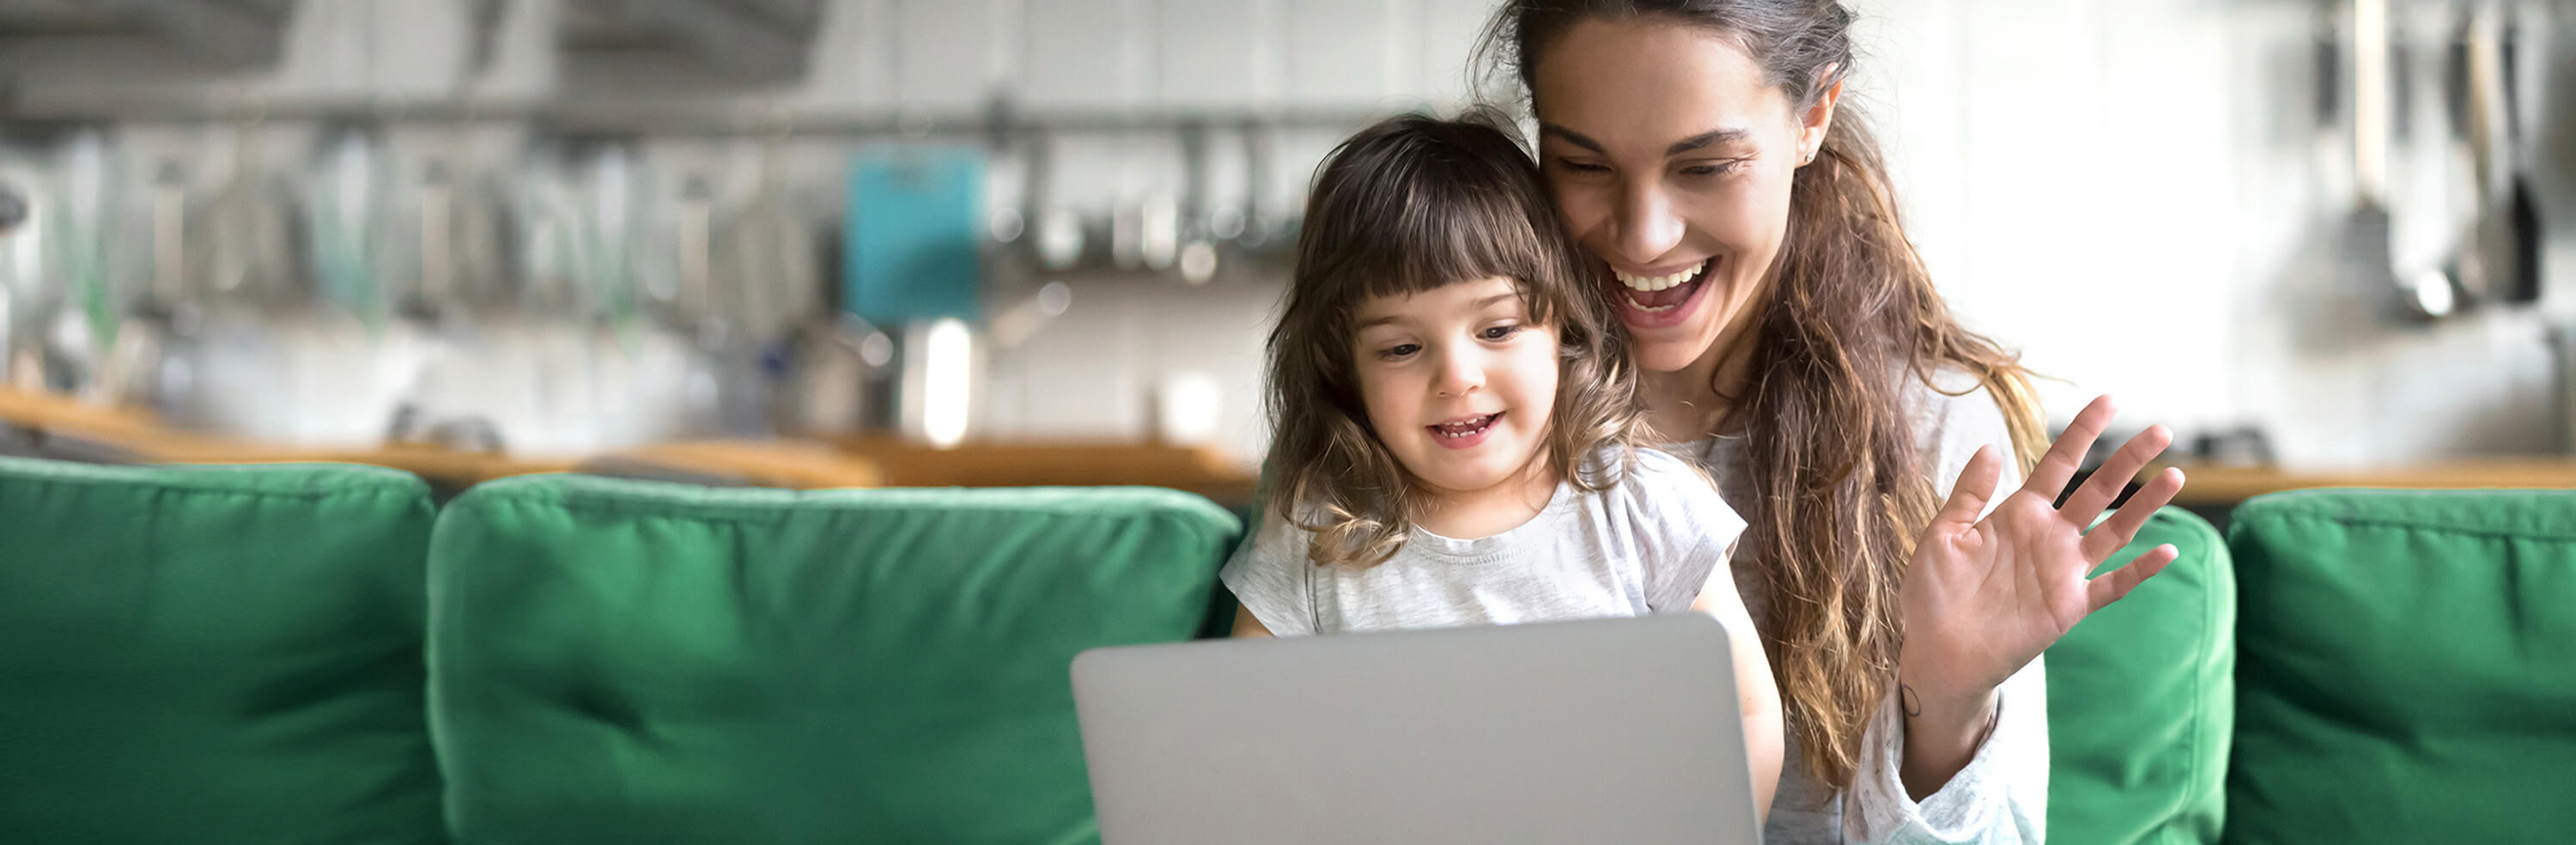 A mother and her young daughter smile as they look at a laptop screen.